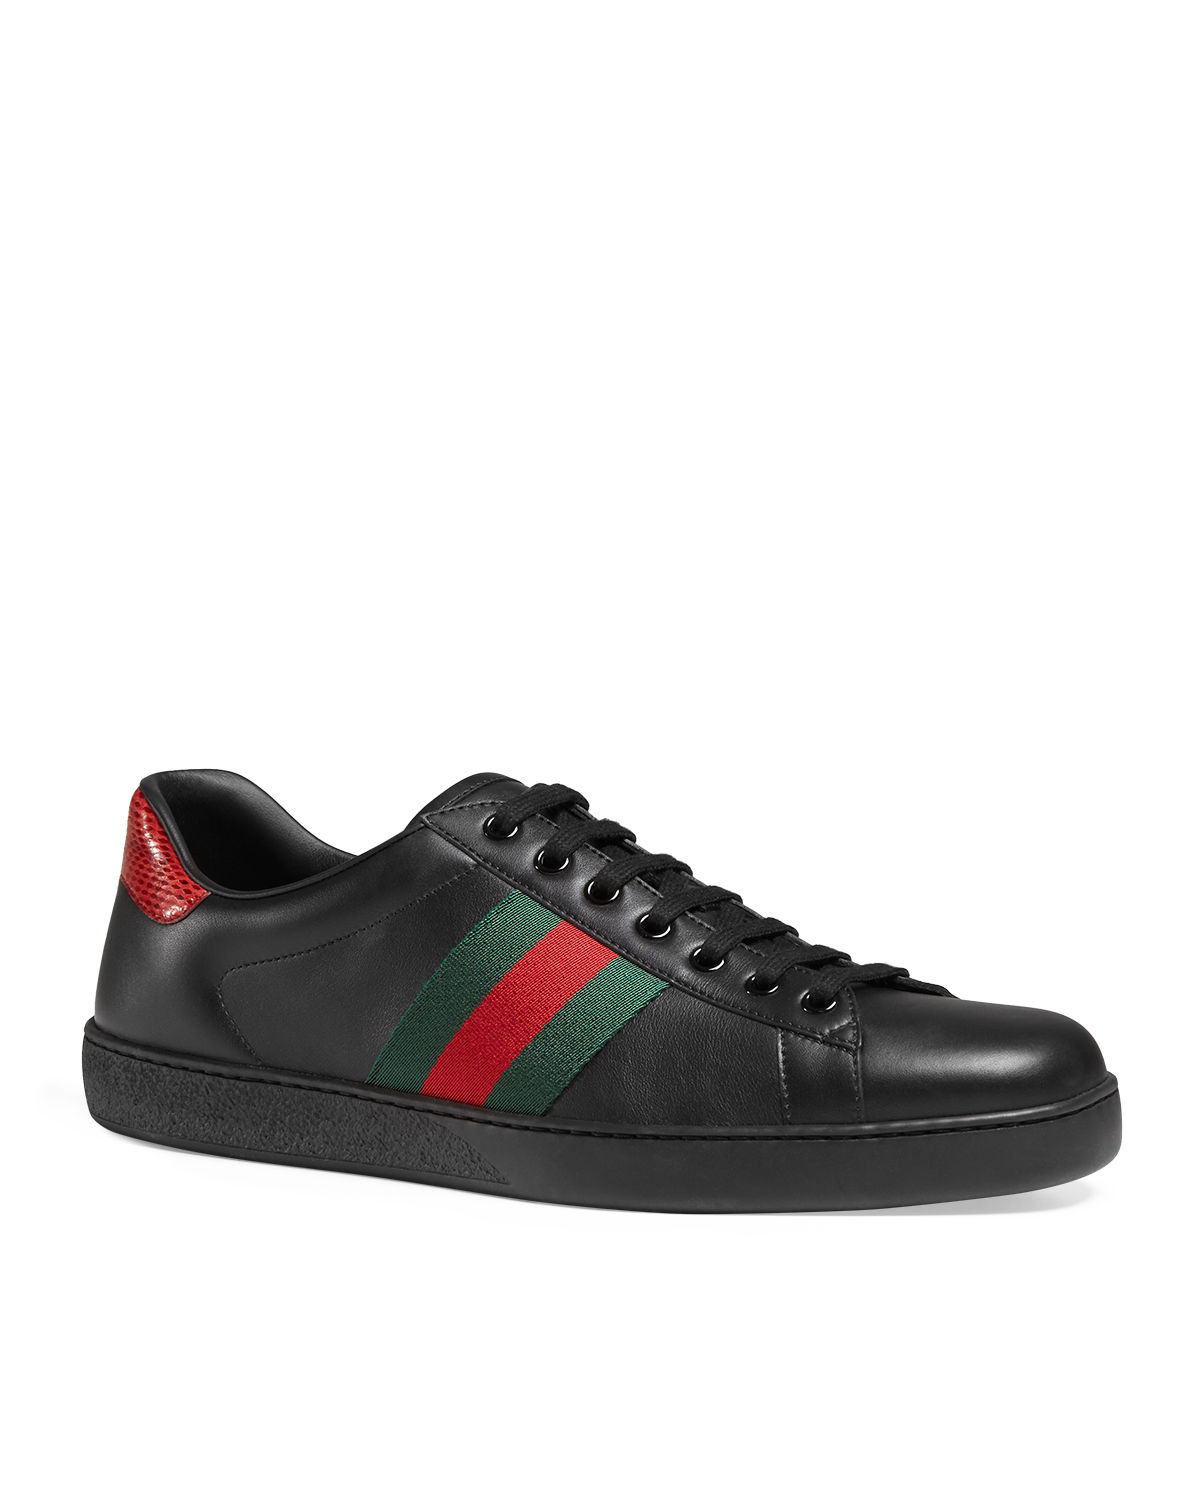 de3e3bd8c68e Gucci Men s New Ace Leather Low-Top Sneakers